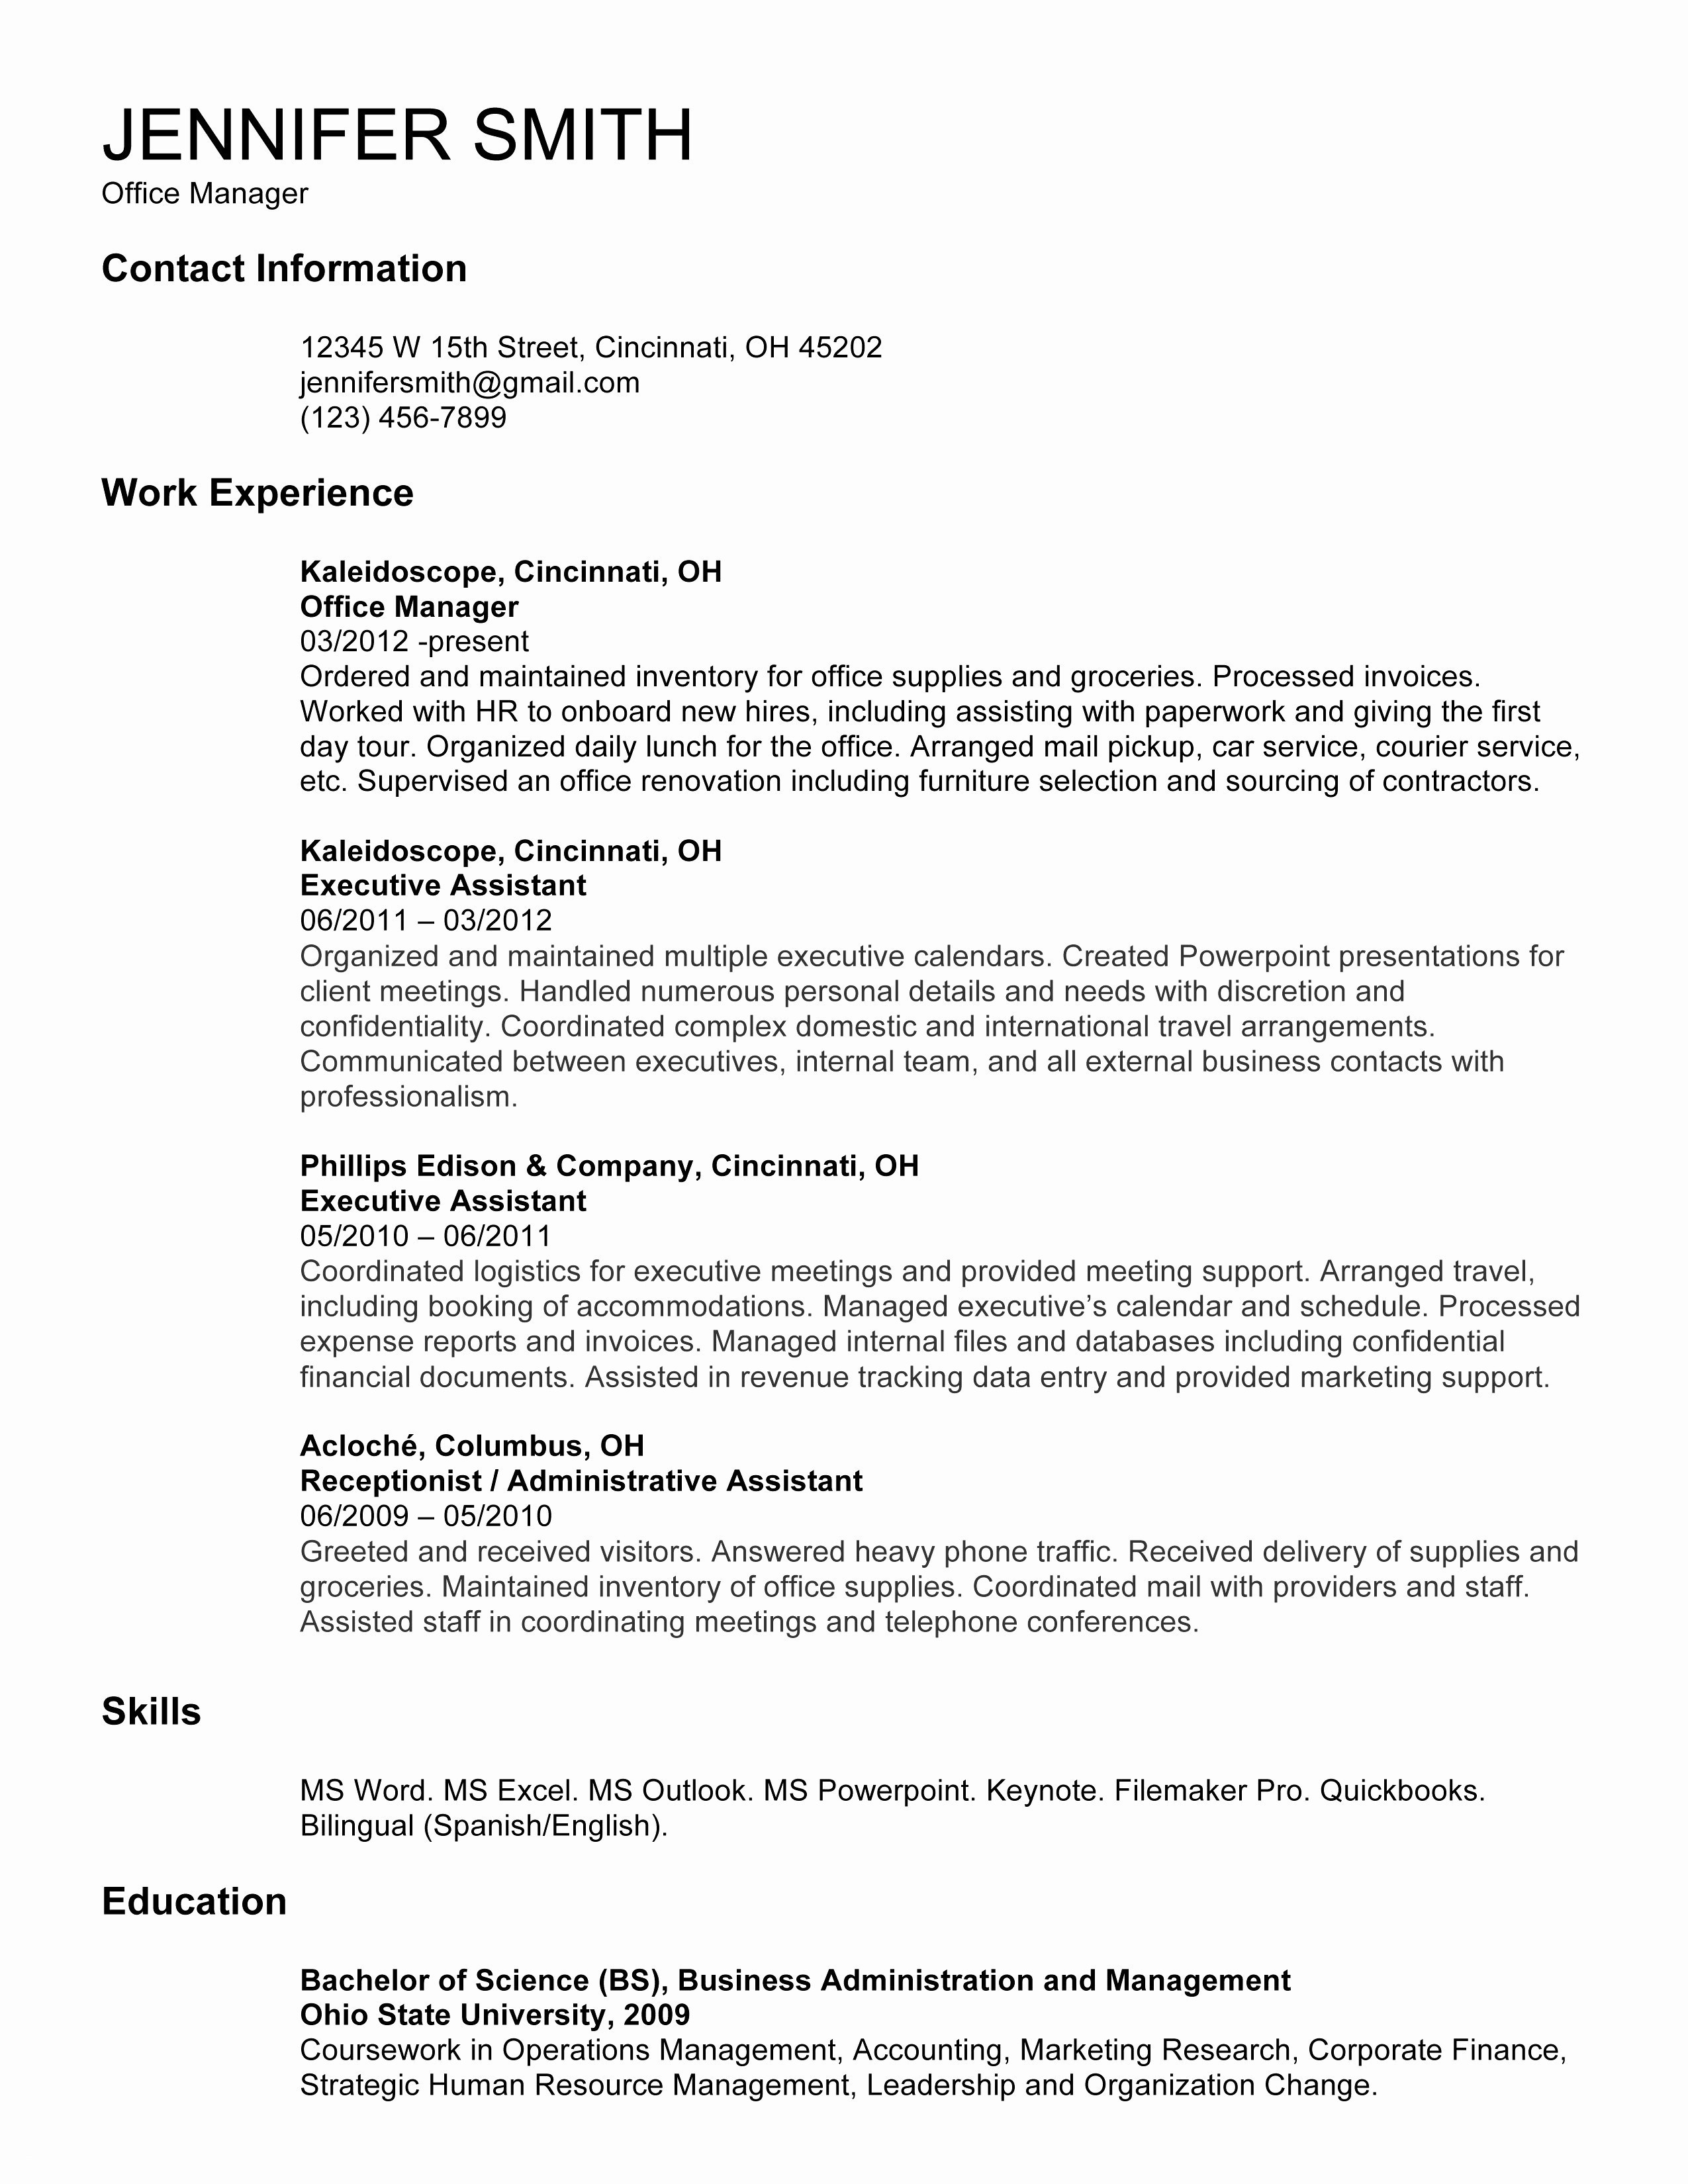 Writing A Resume Profile - Examples Resume Luxury Resume Profile Examples for Receptionist